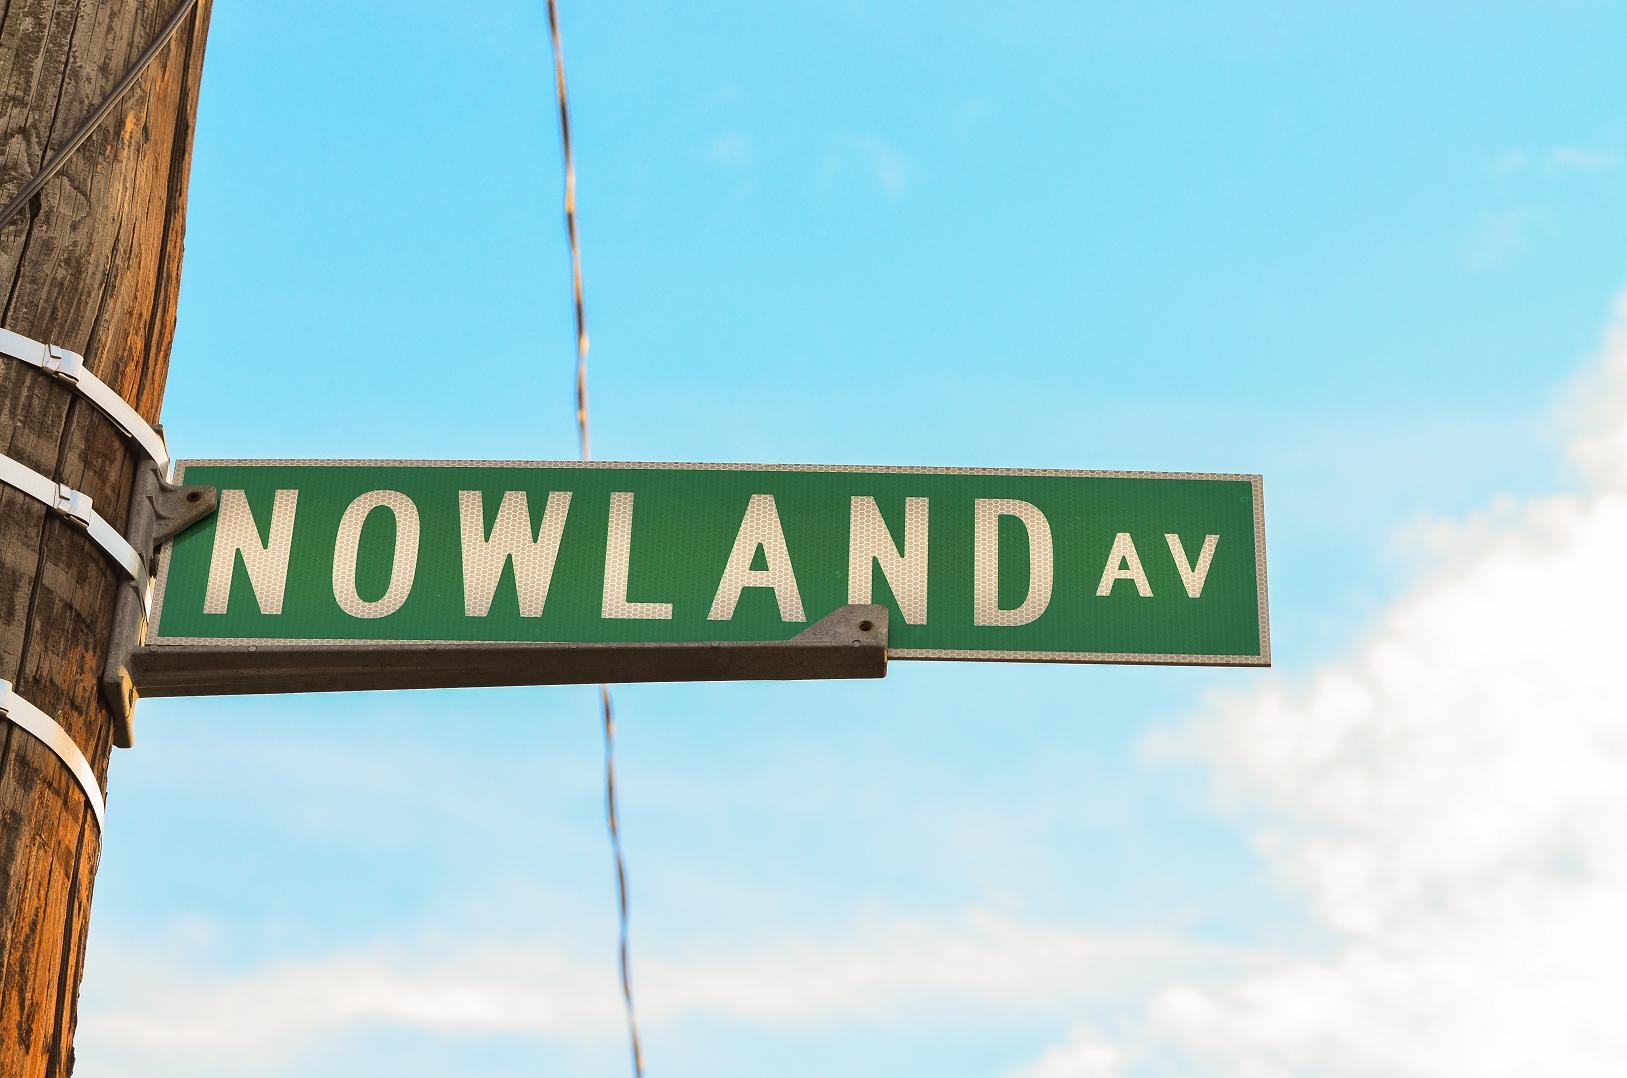 What's in a Name: Nowland Avenue